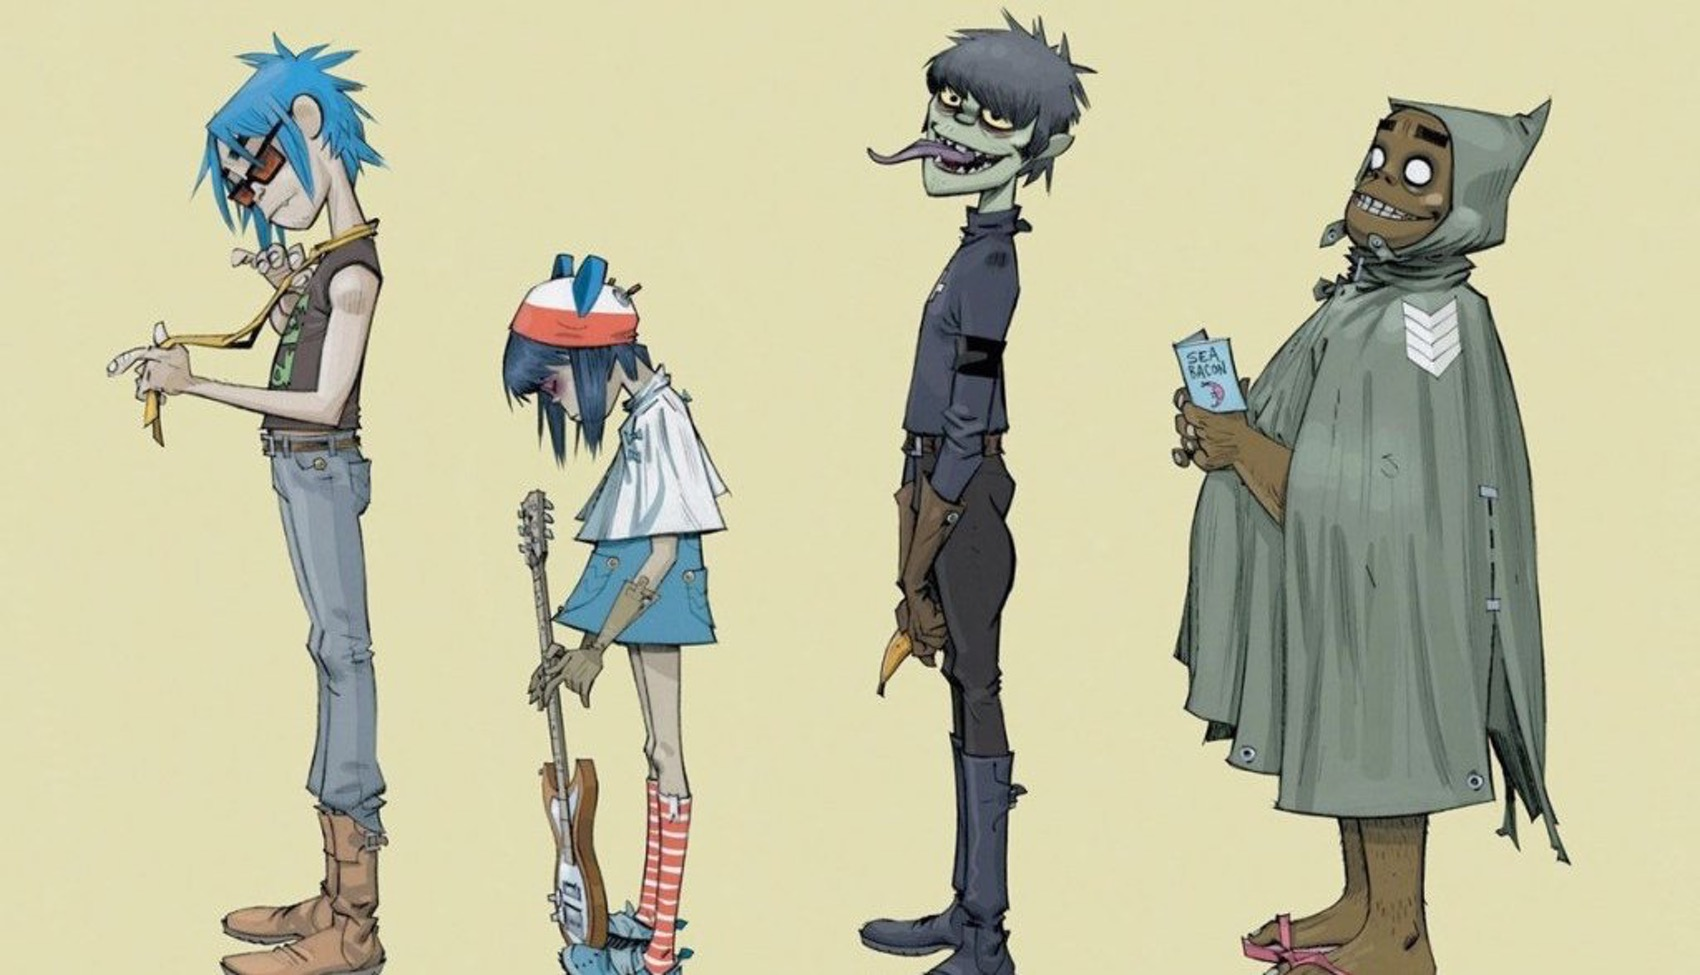 gorillaz-hit-the-social-media-world-by-joining-.original